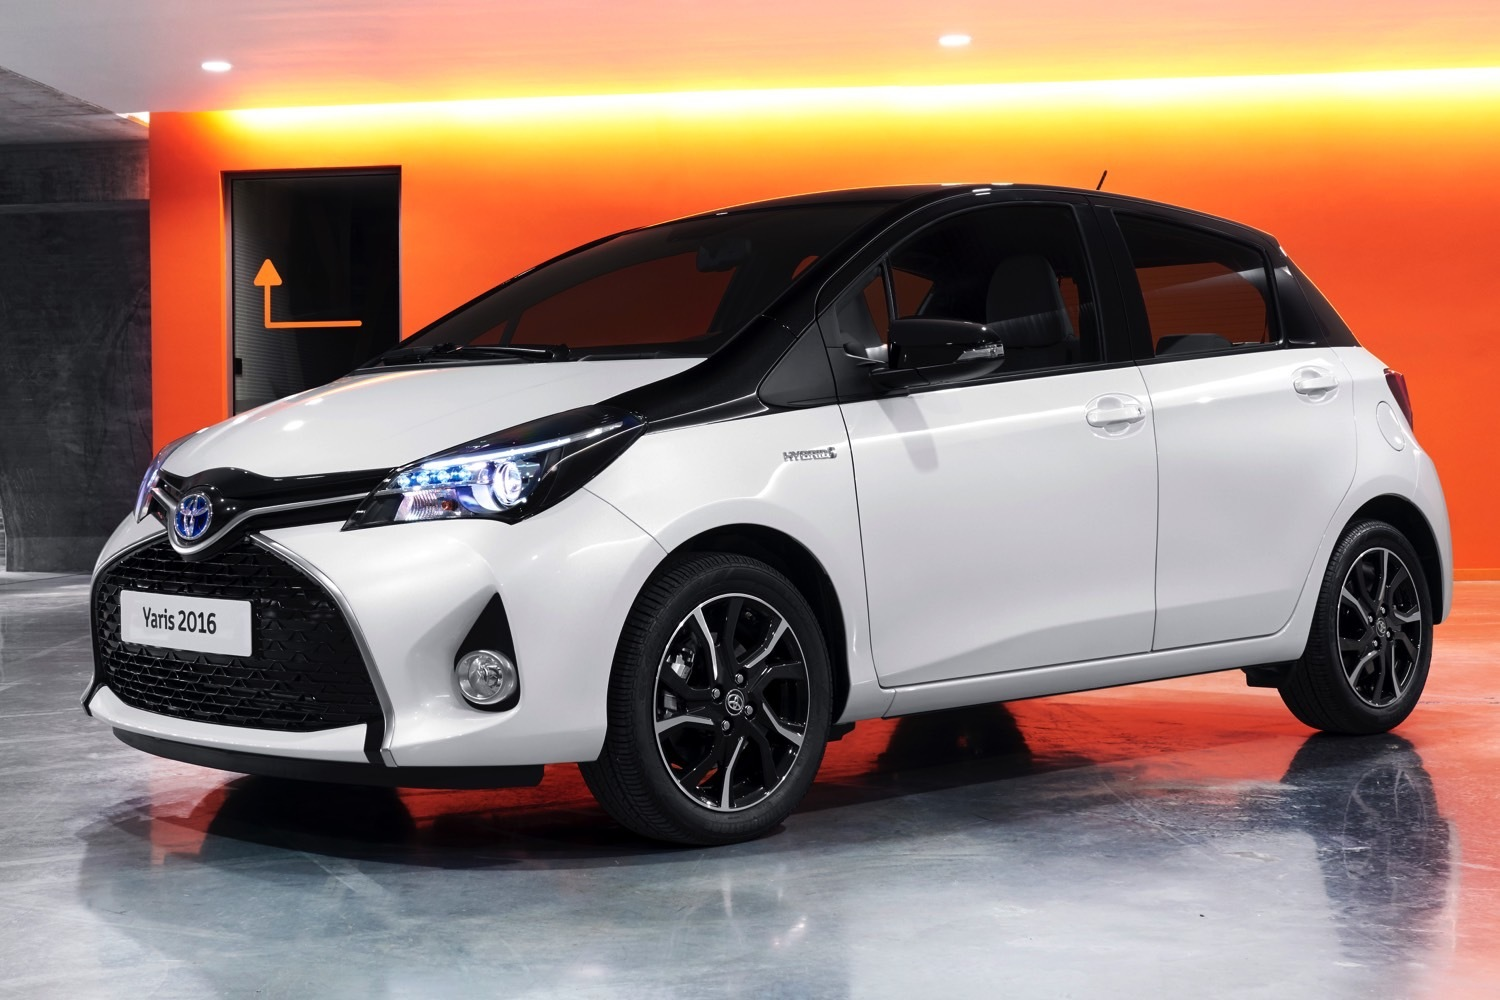 Salon de gen ve 2017 toyota yaris restyl e peaufin e for Interieur yaris 2017